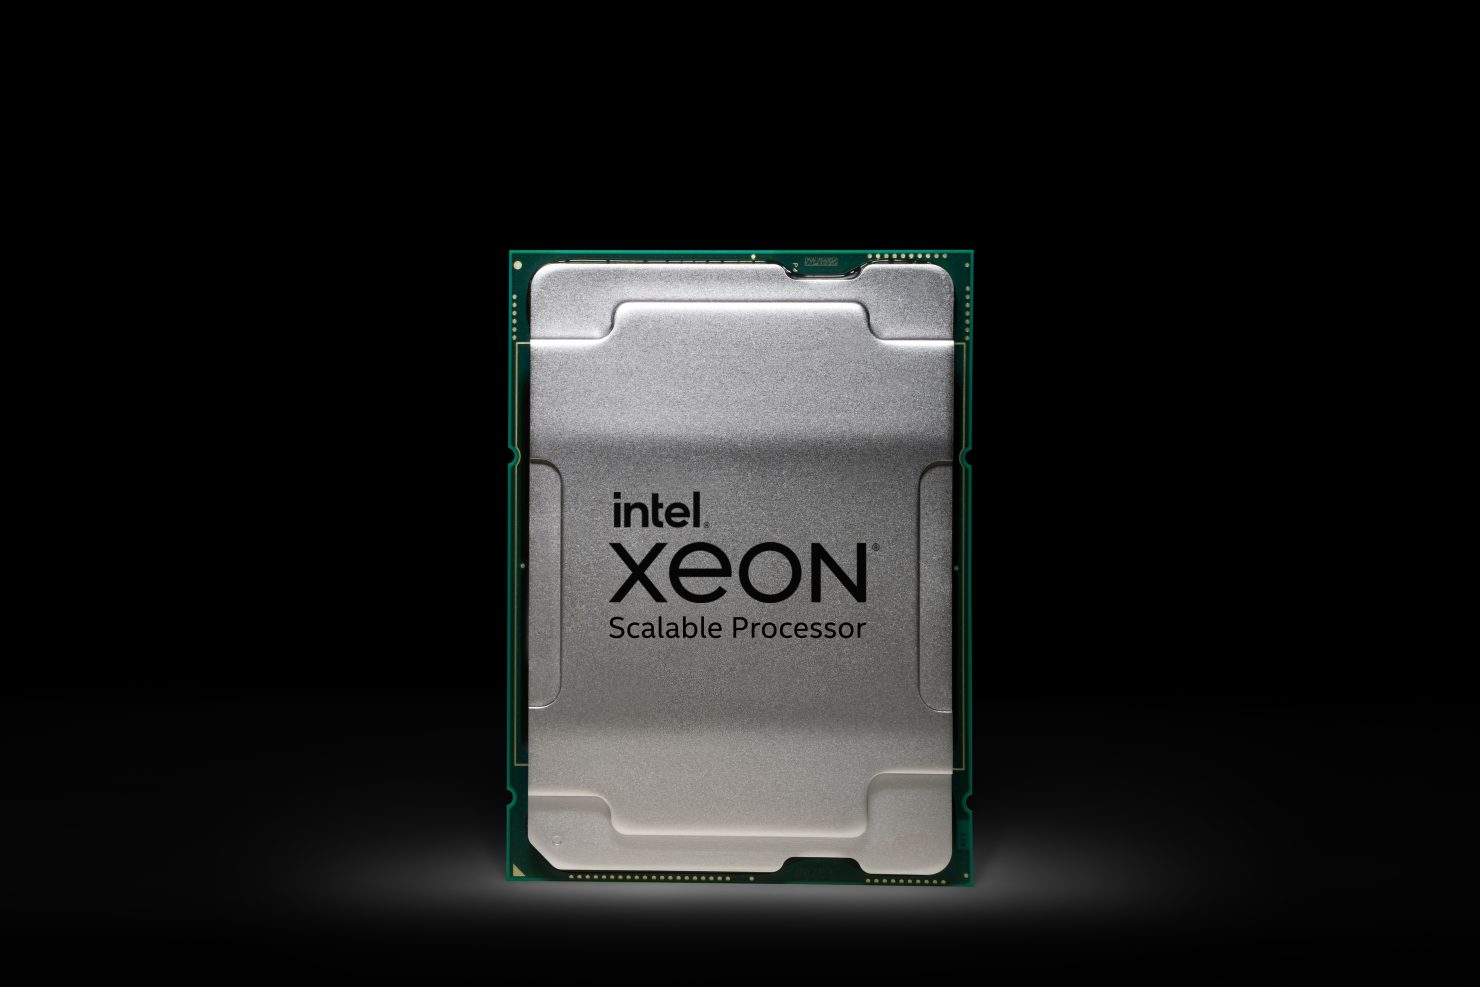 intel-20-core-&-40-thread-sapphire-rapids-xeon-cpu-spotted-&-tested,-dual-socket-config-with-up-to-70-mb-cache-&-up-to-4.7-ghz-clocks